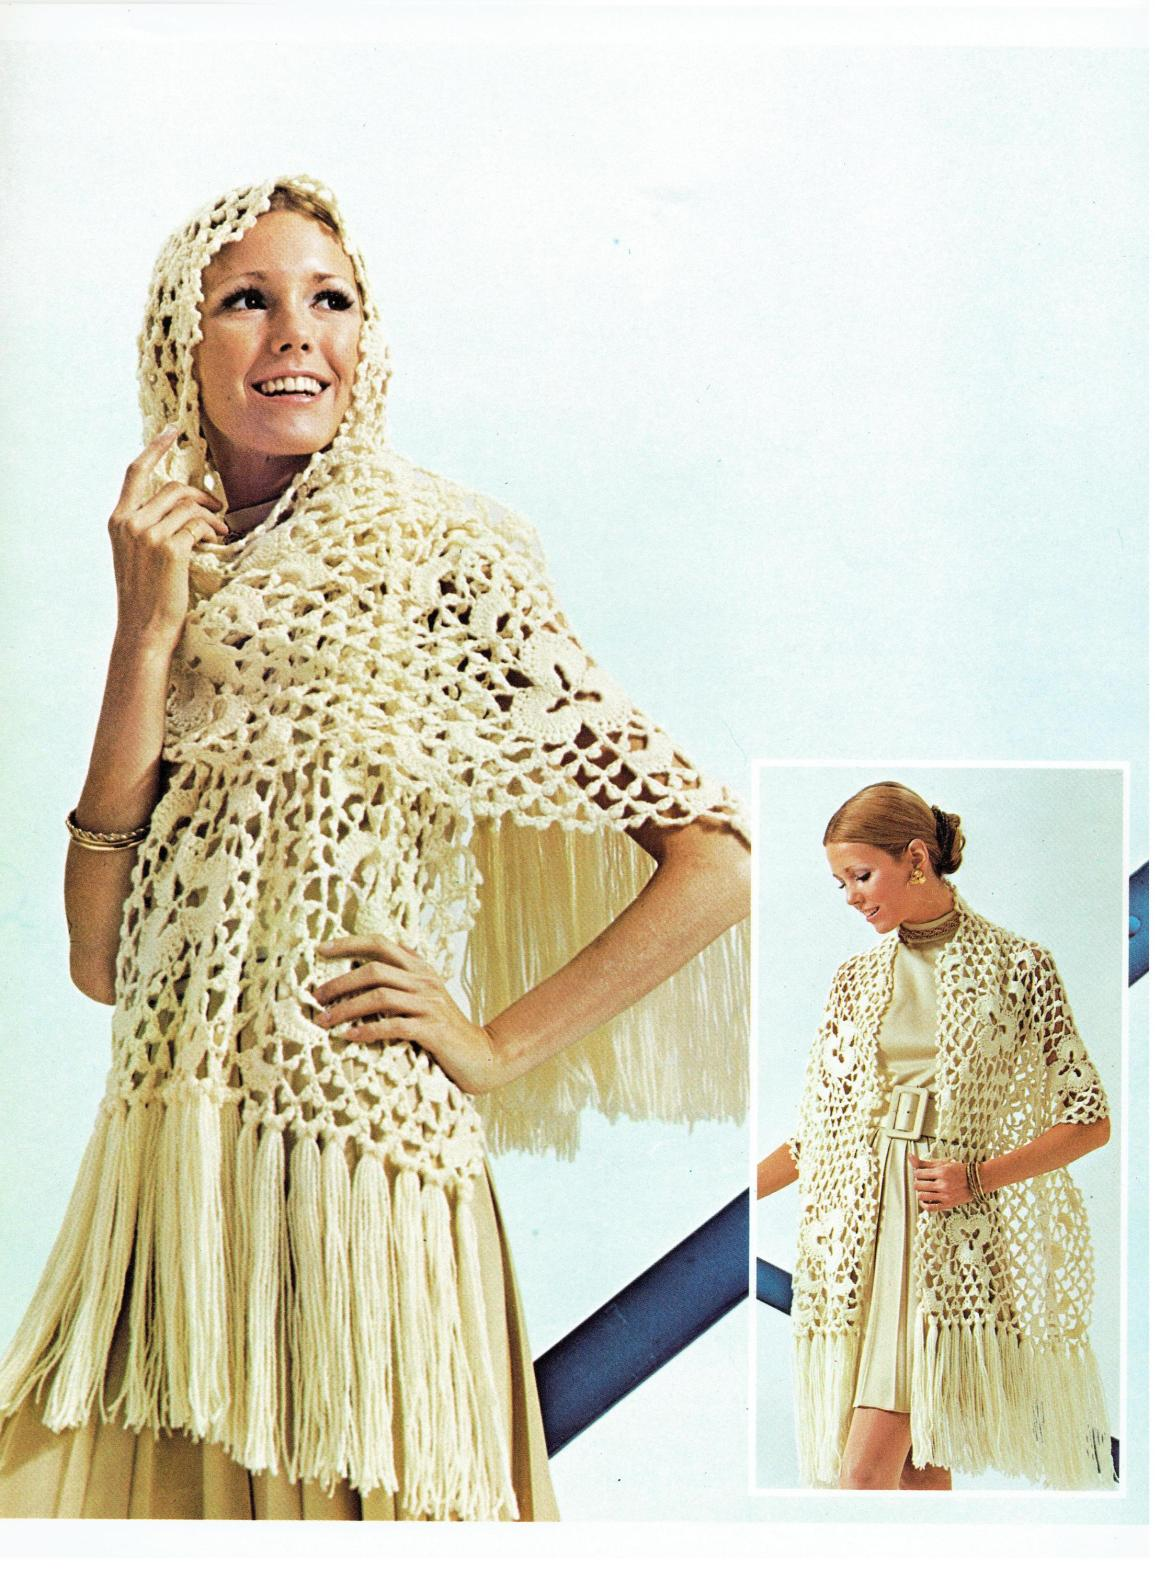 aa8acf4bd34dc Crochet Your Own Vintage Crochet Lace Medallion Stole Pattern ...